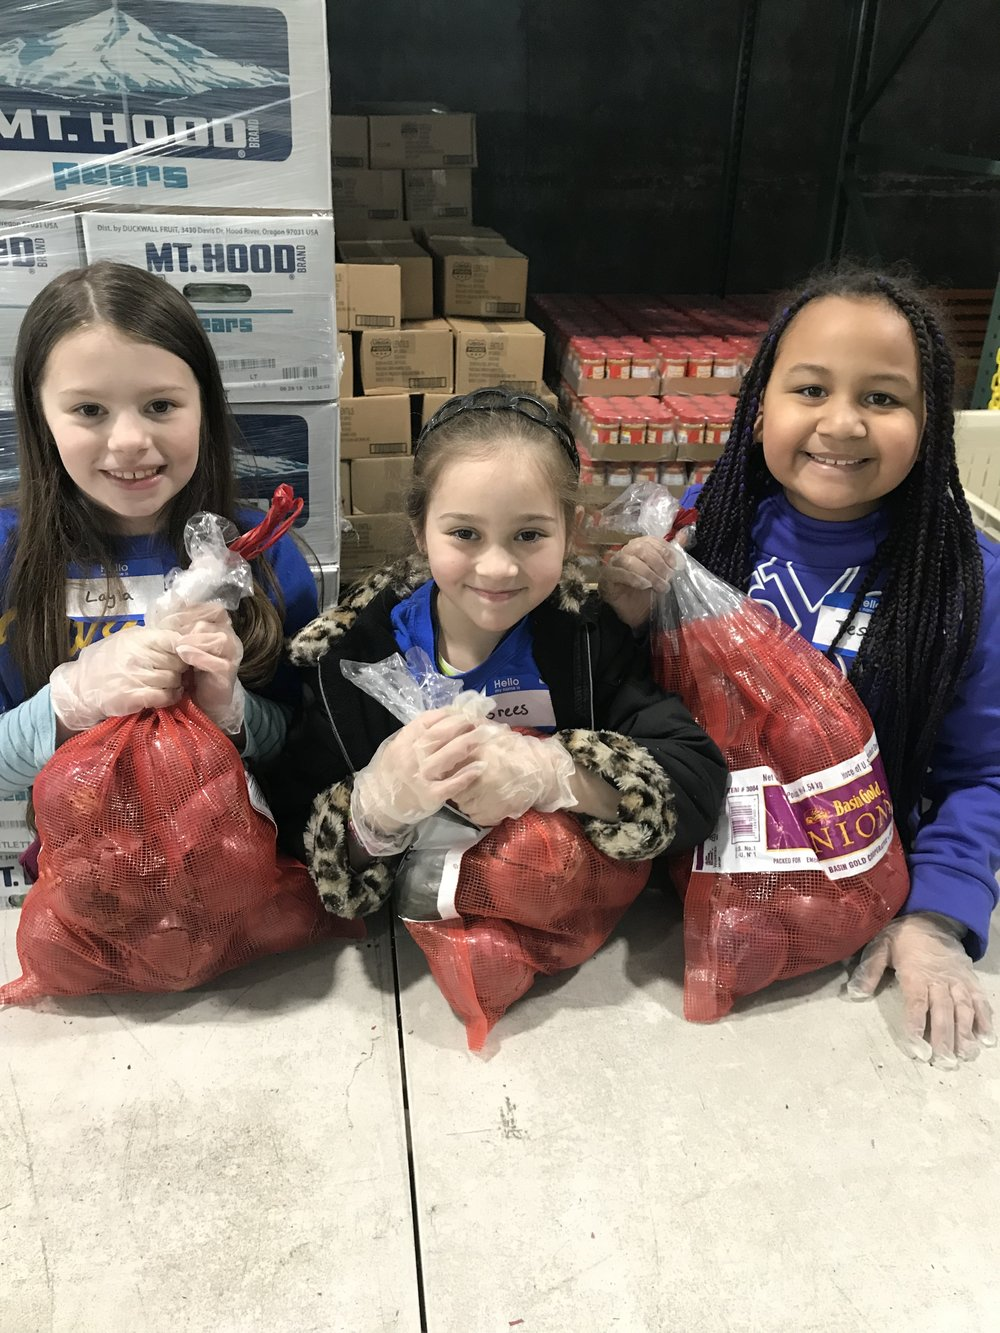 During the visit, second graders weighed their food donations and packed food boxes for families in our community.